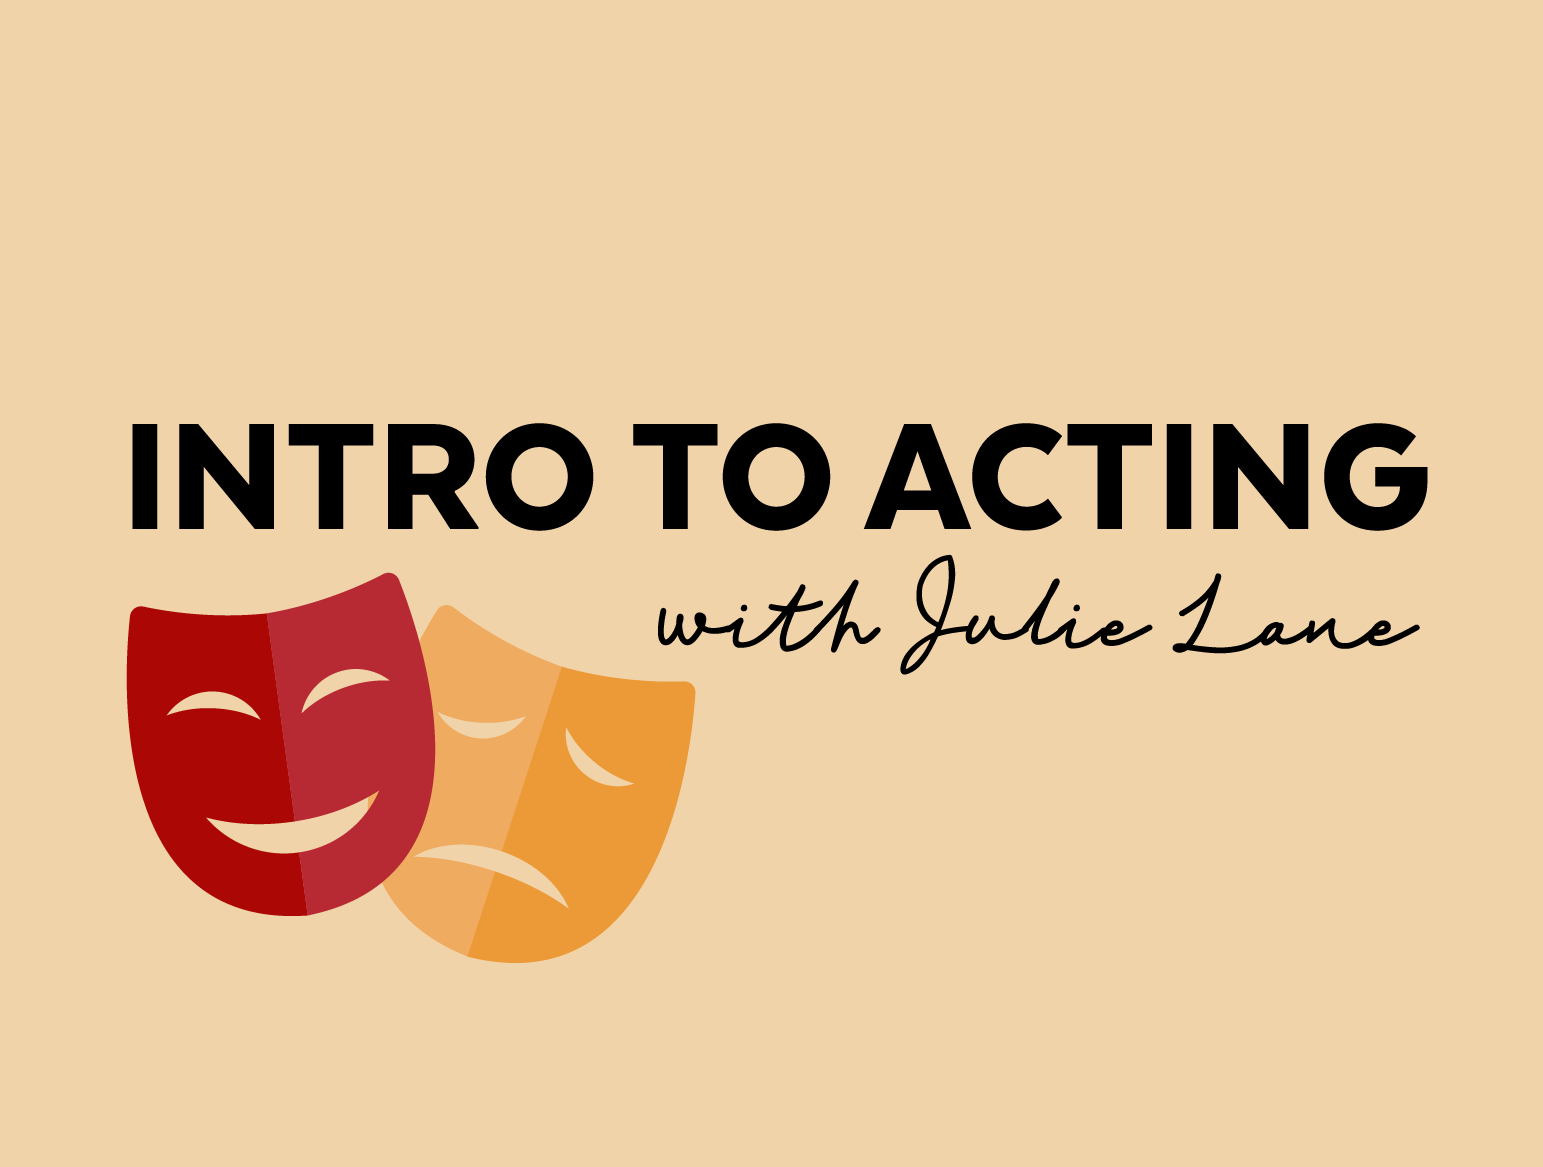 More Info for Intro to Acting with Julie Lane